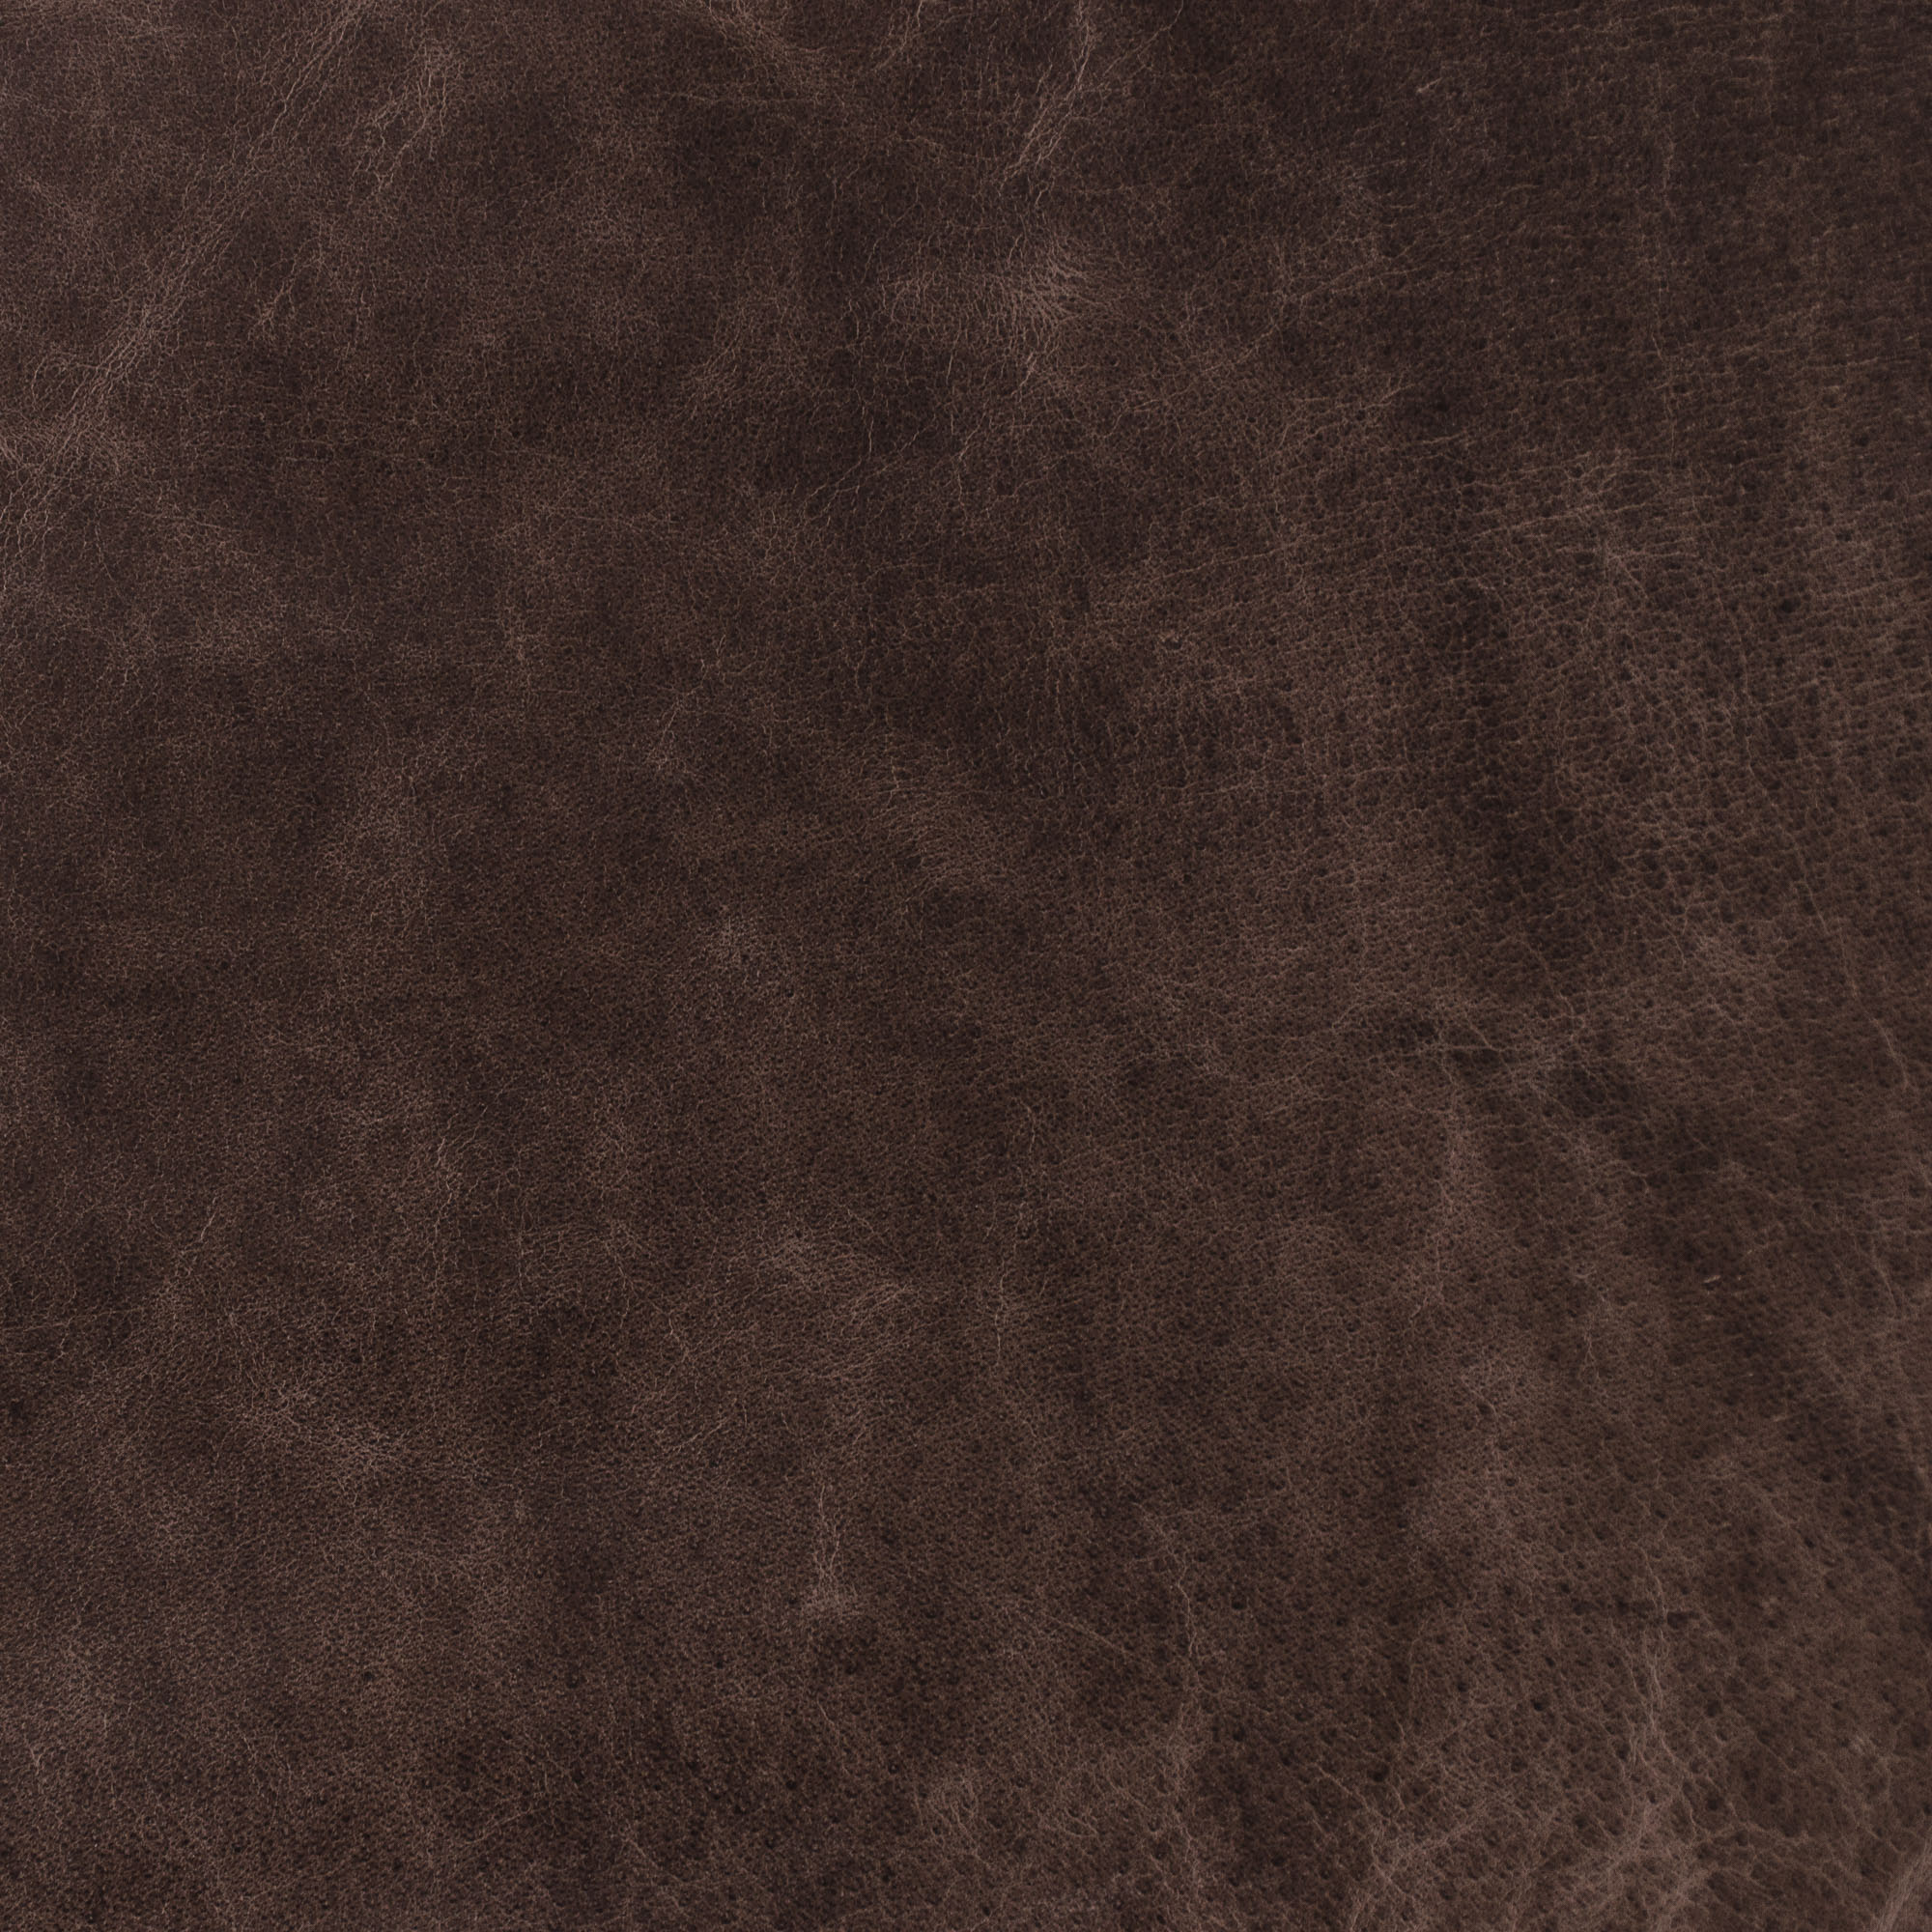 Cocoa Leather Swatch